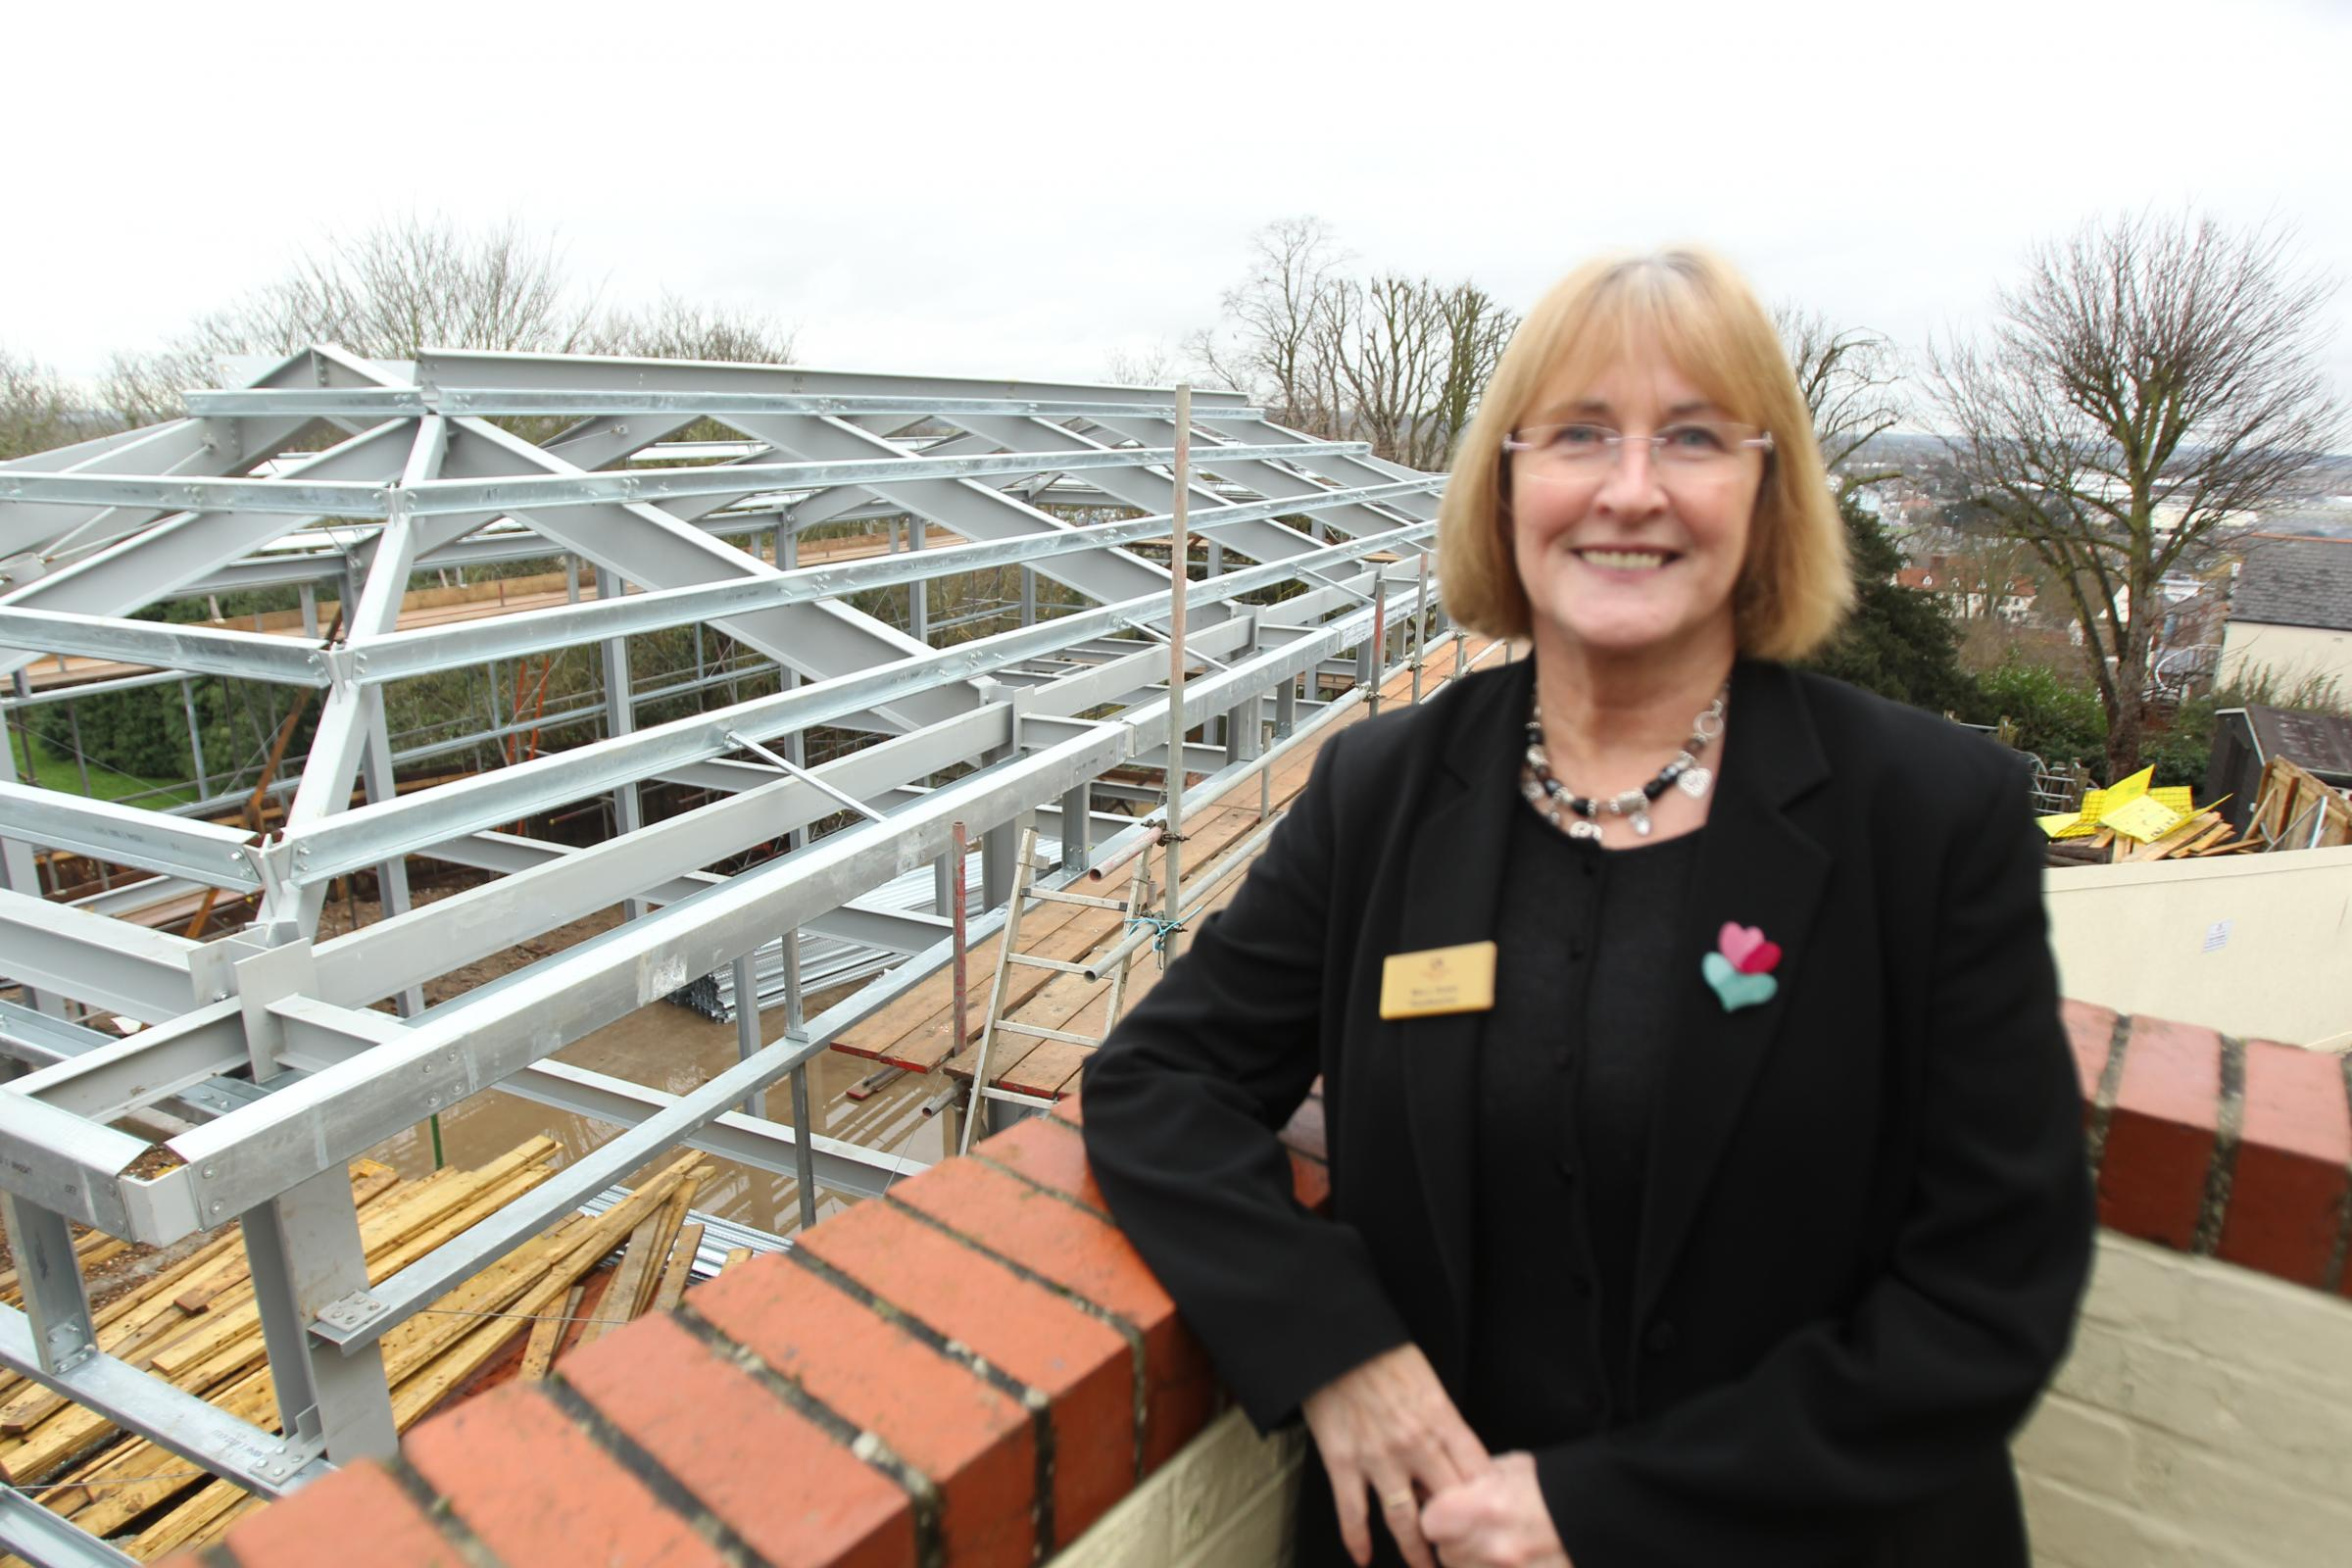 Maldon prep school builds new school hall